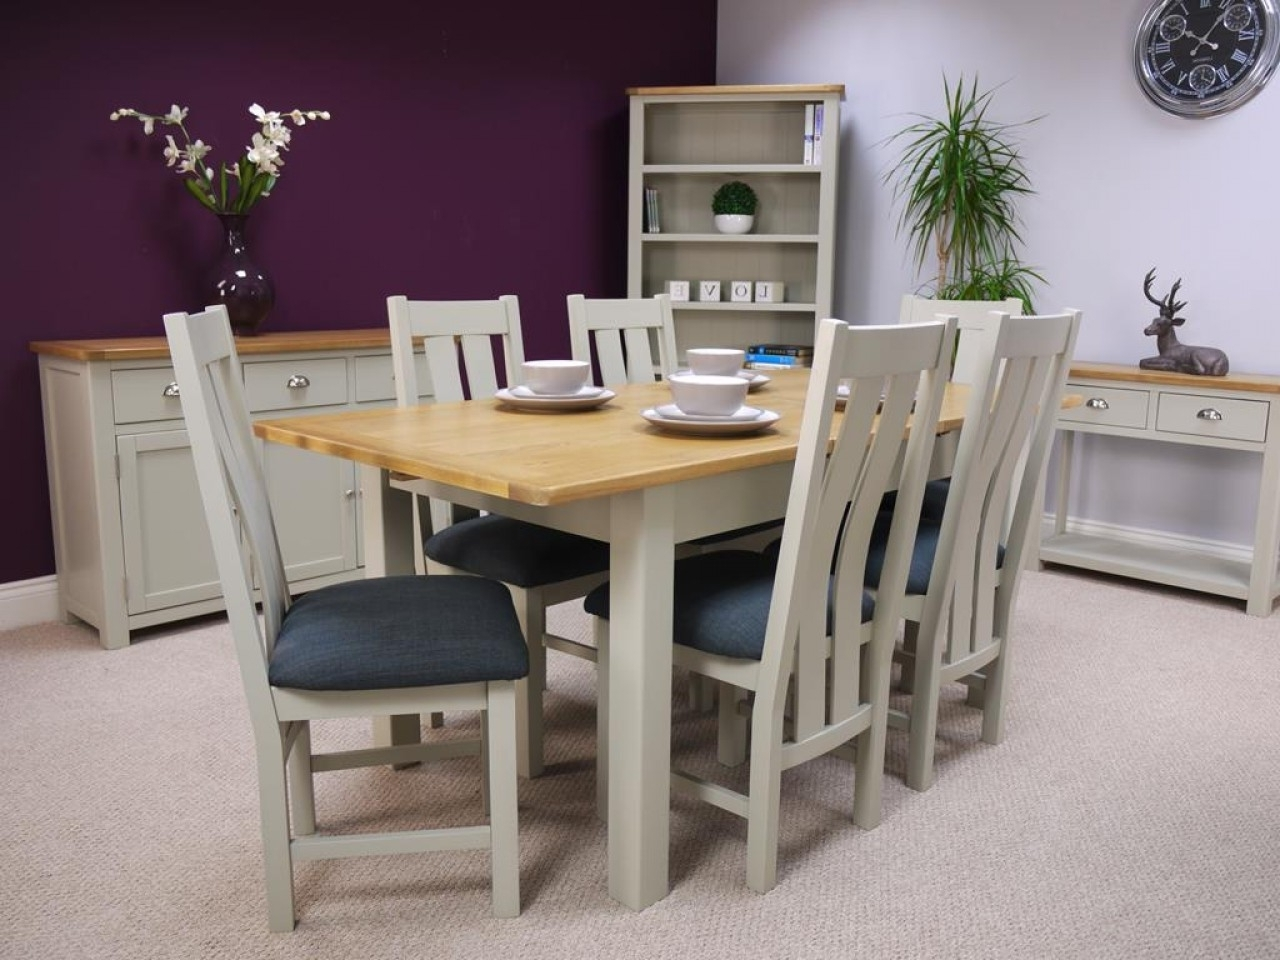 Dining Extending Tables And Chairs With Regard To Recent 5. Modern Venicia Collection Extending Dining Table In Grey Grey (Gallery 14 of 25)